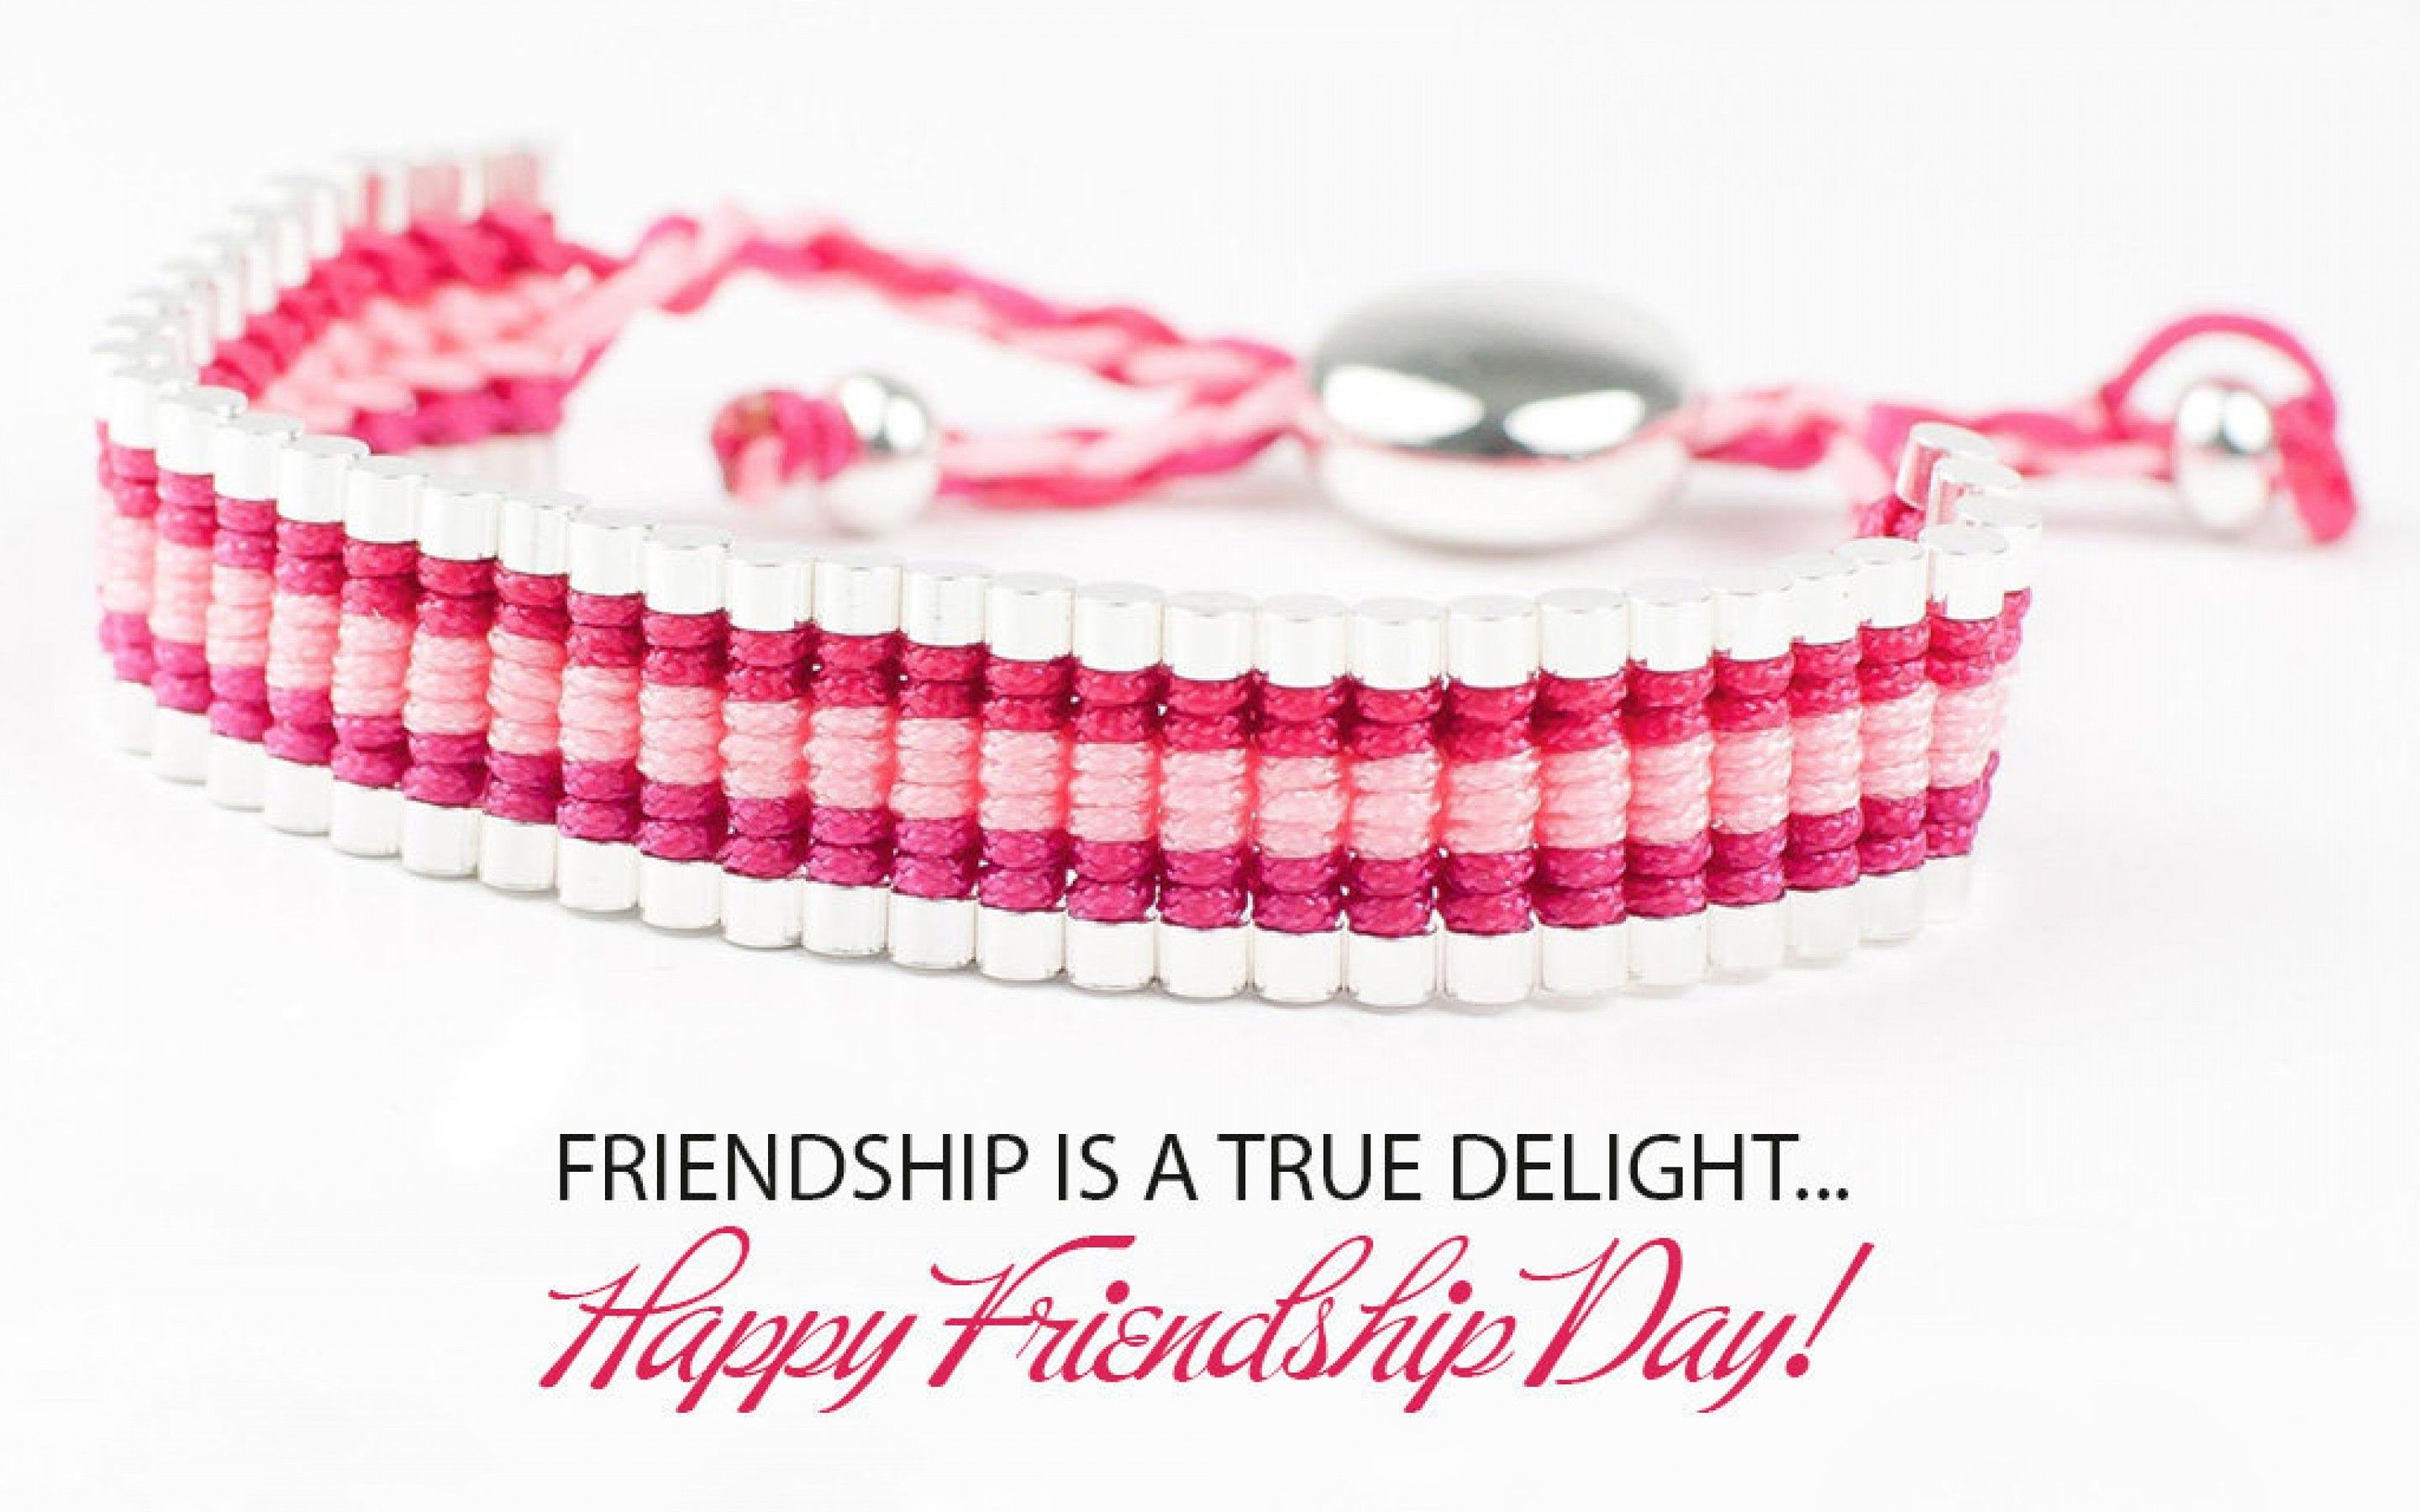 Happy Friendship Day Wallpapers Free Download